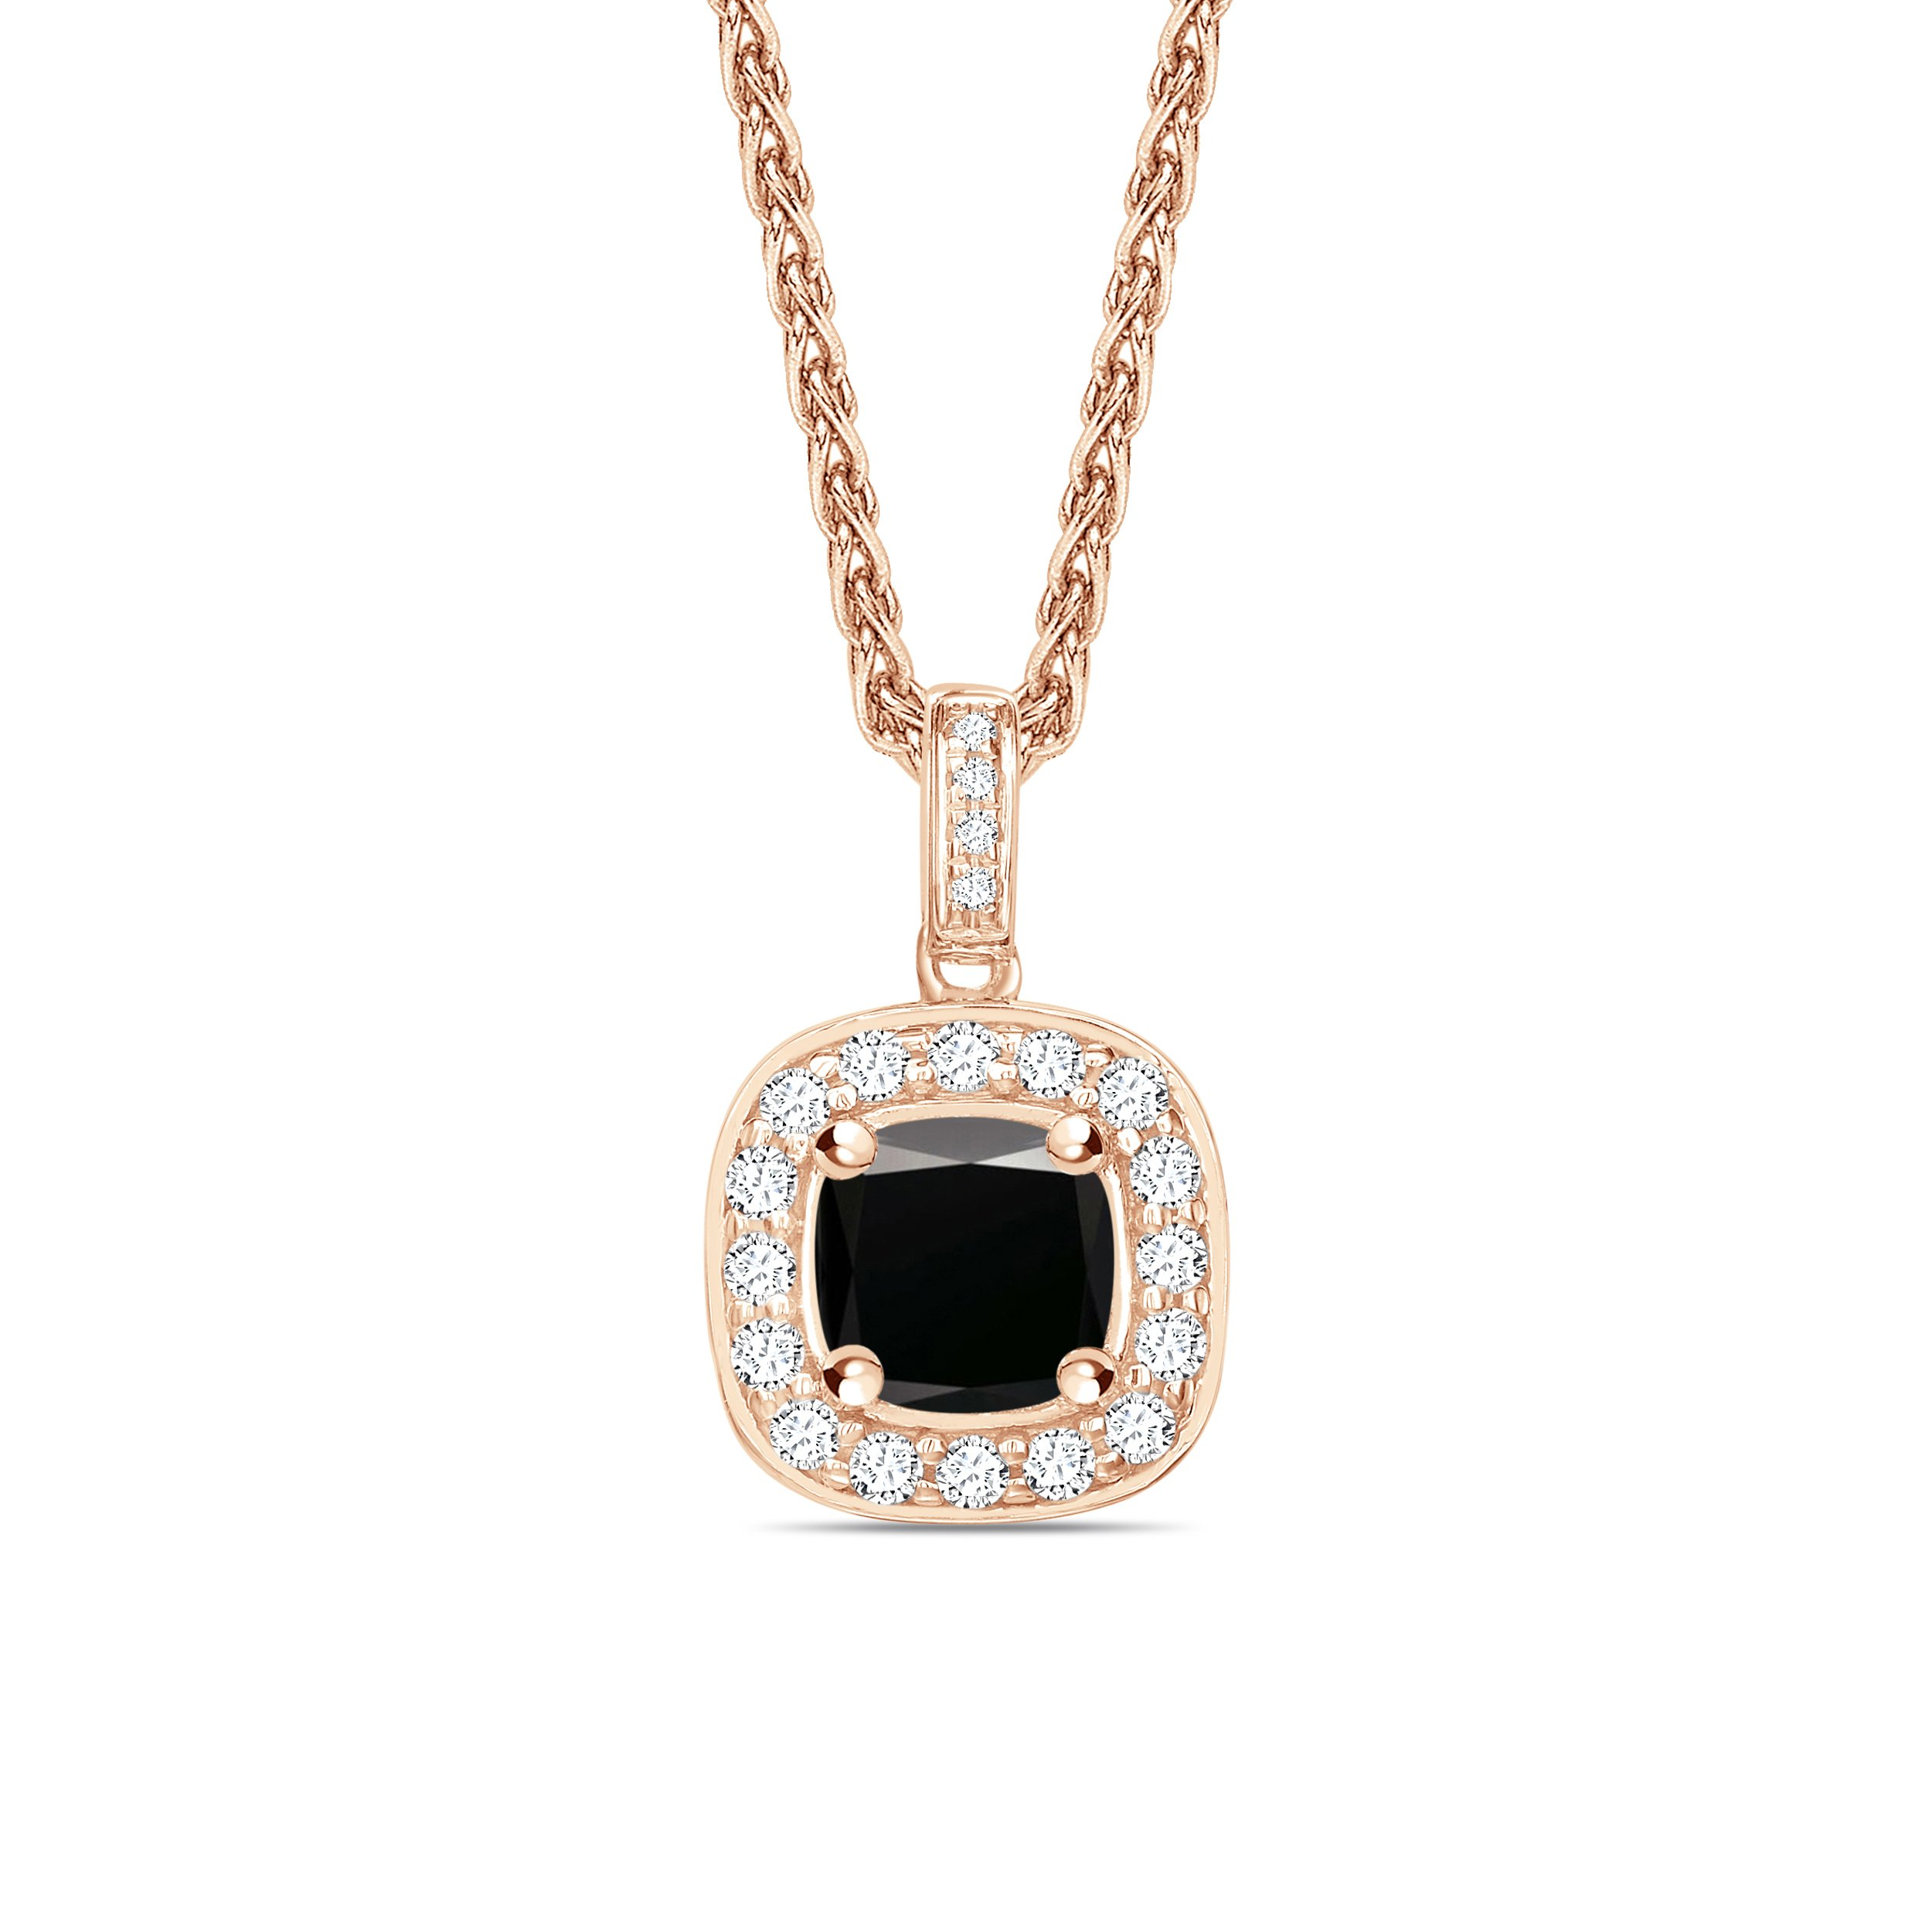 Pave Set Halo Style Black Diamond Solitaire Pendants Necklace